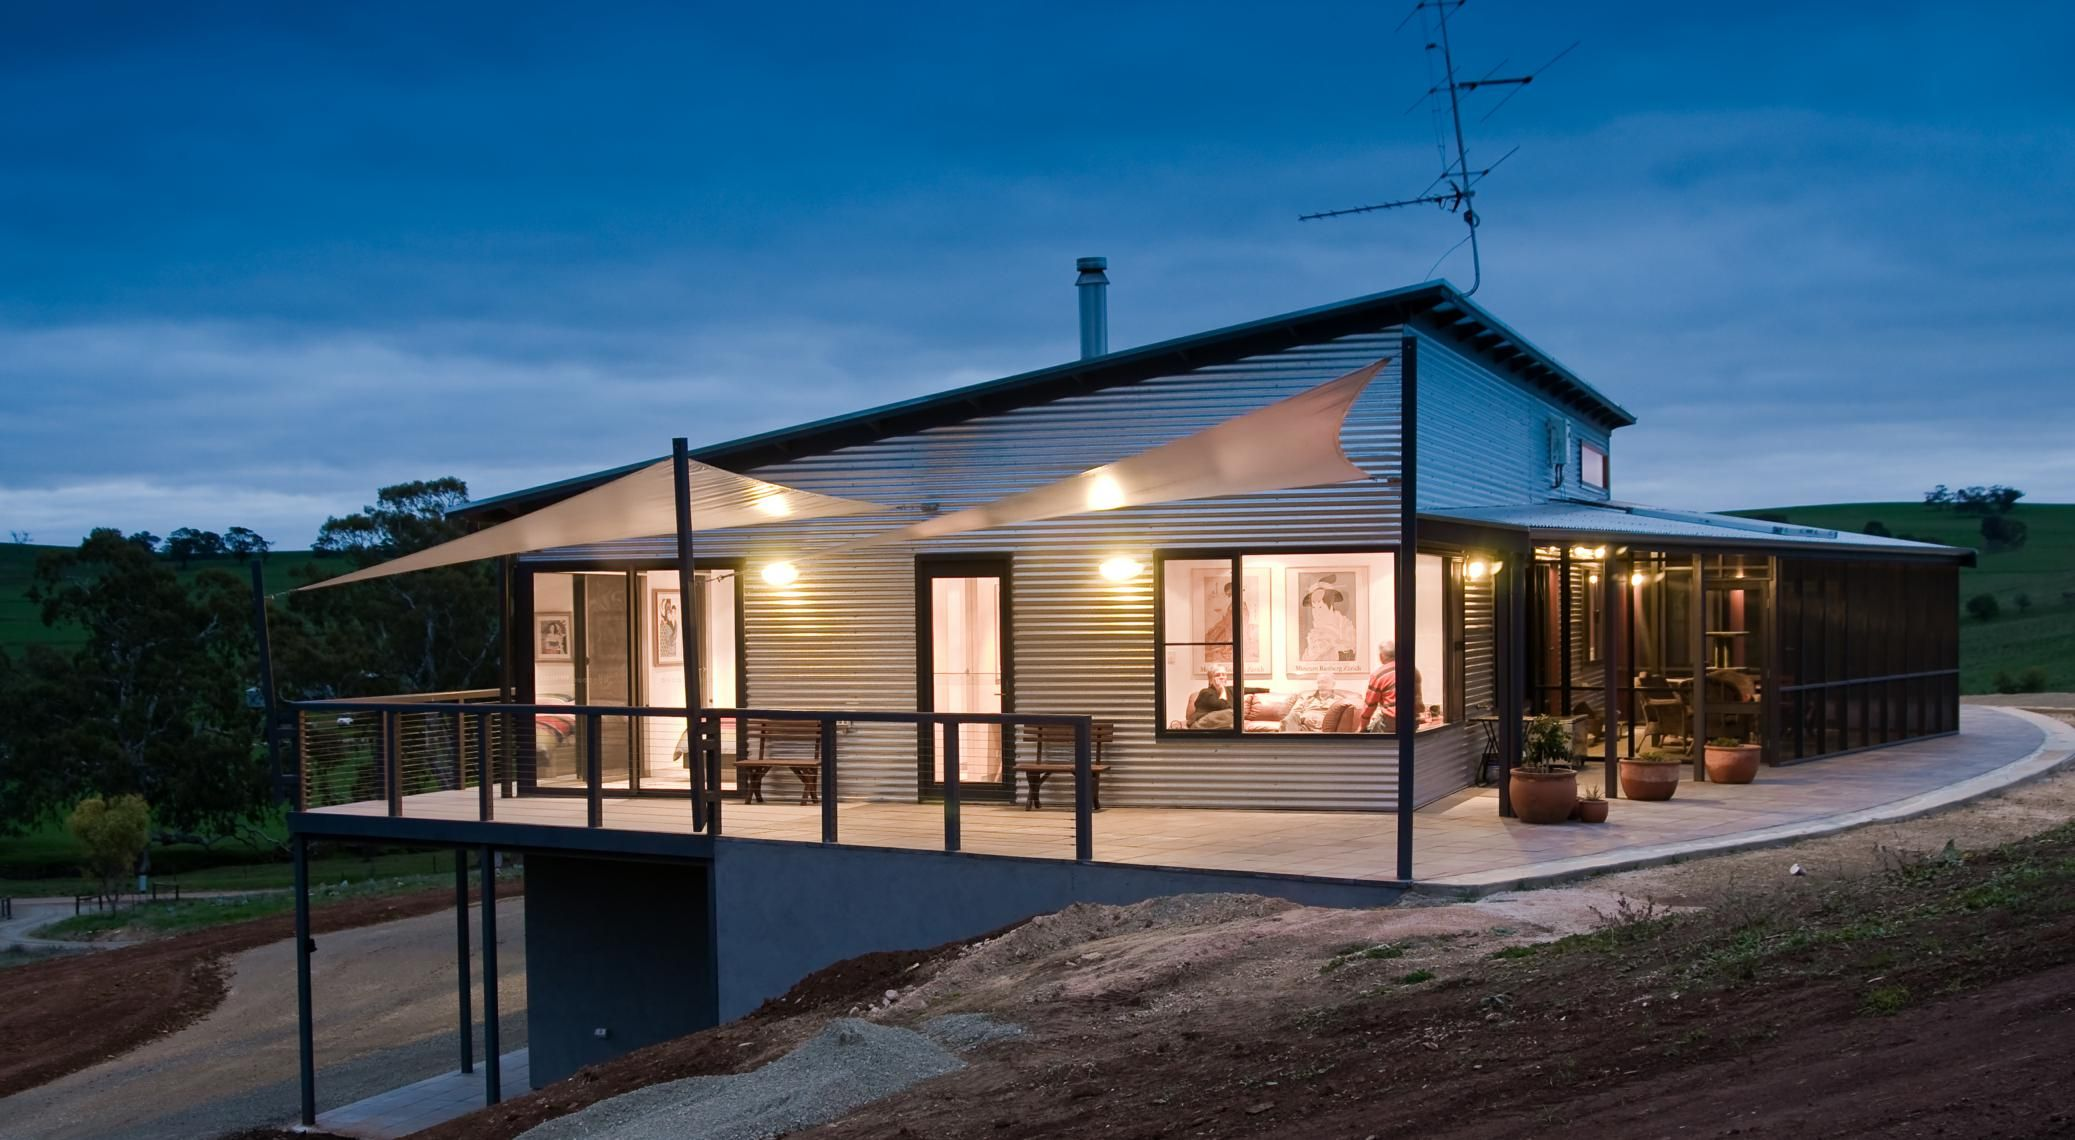 Liveable Dwellings Houses Shed Homes House Cladding Steel House